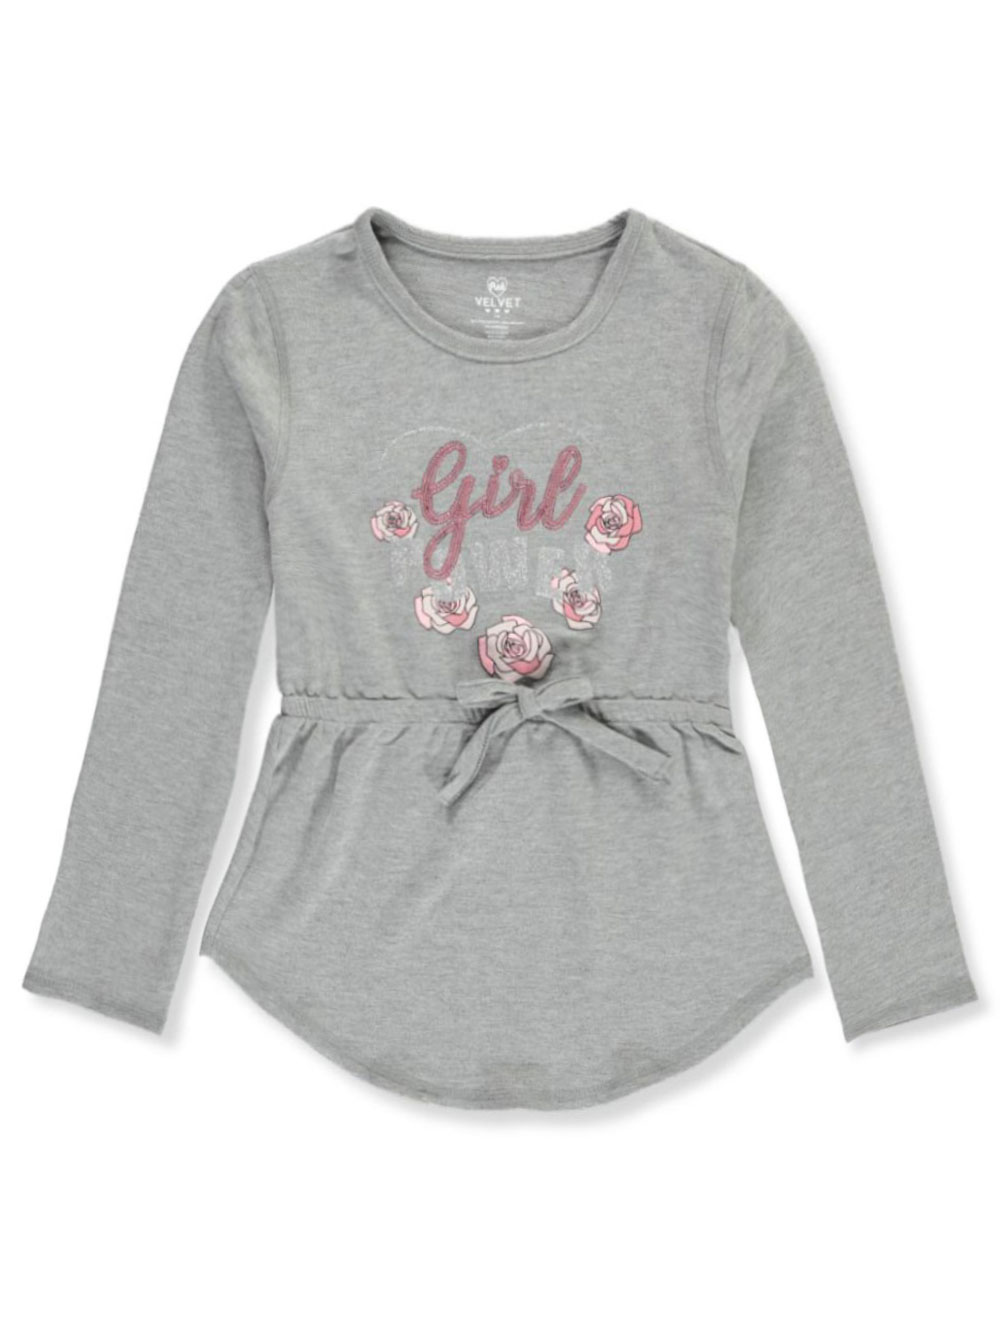 Pink Velvet Girls L//S Top